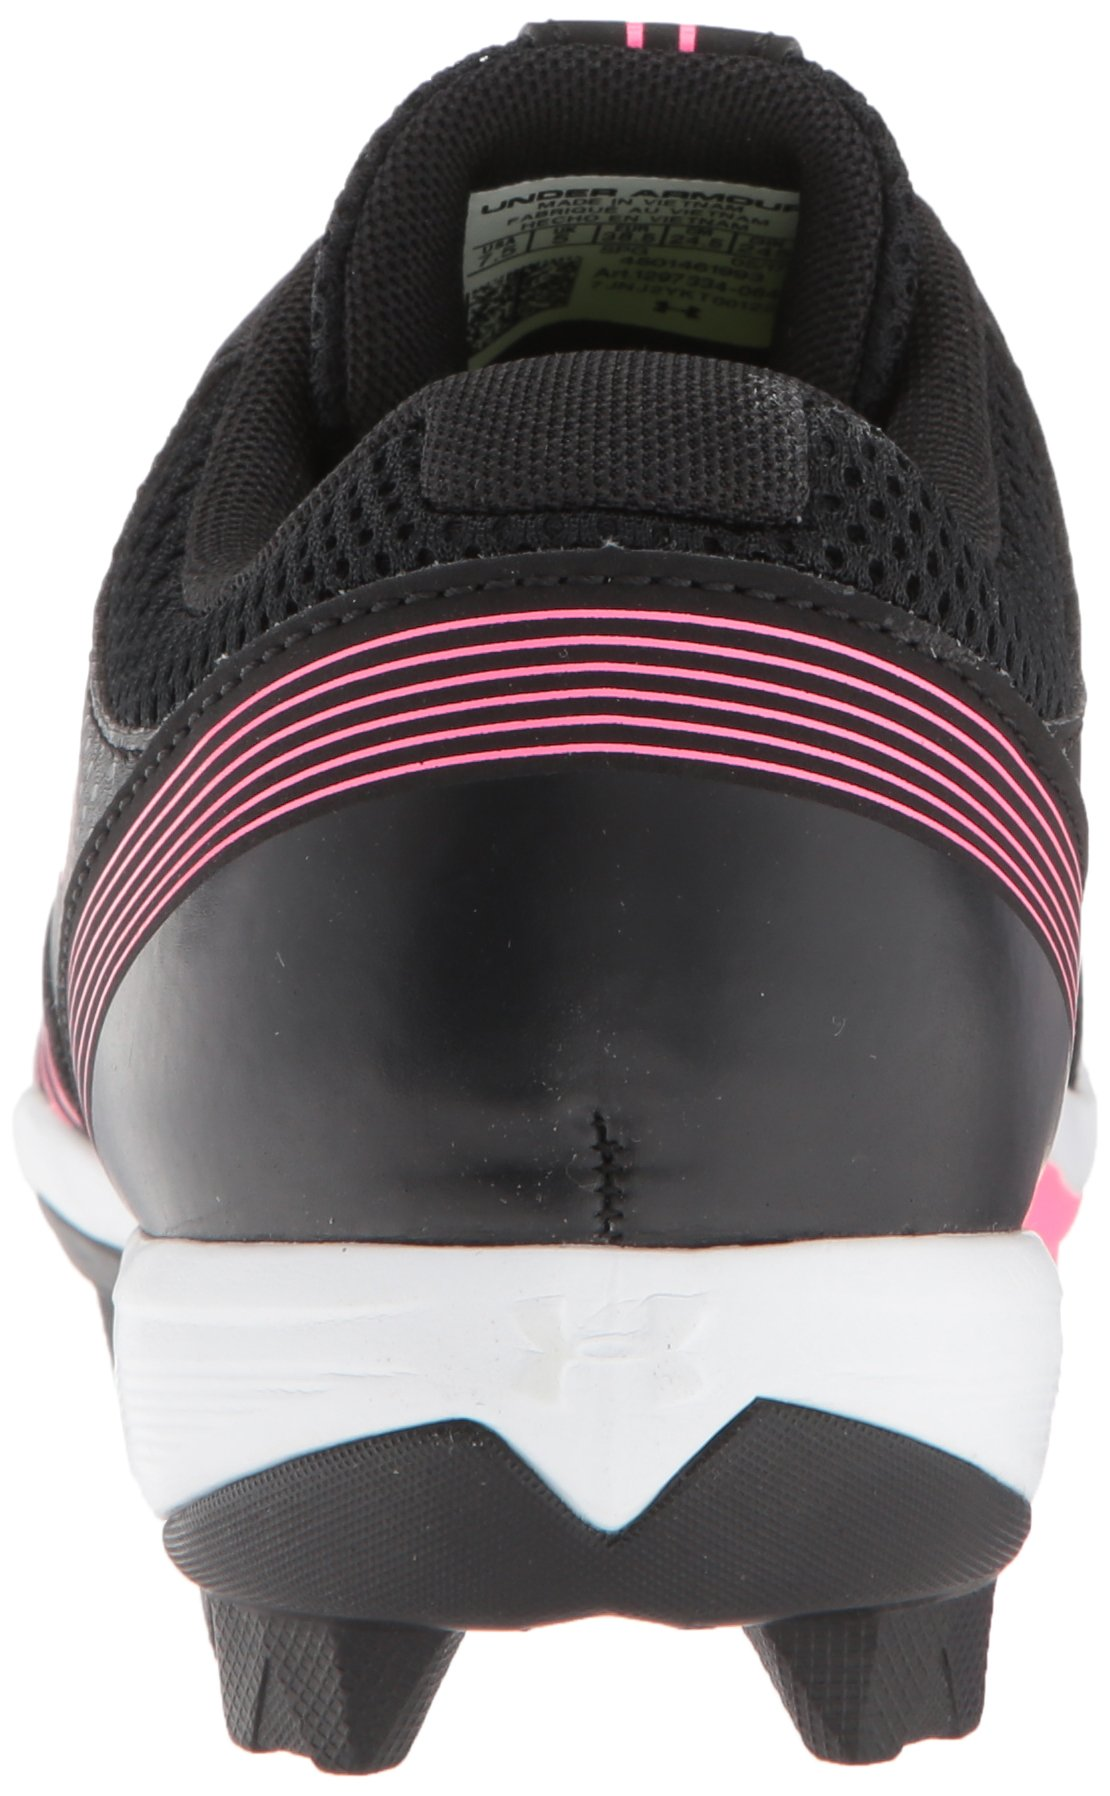 Under Armour Women's Glyde RM Softball Shoe, Black (064)/Cerise, 7 by Under Armour (Image #2)